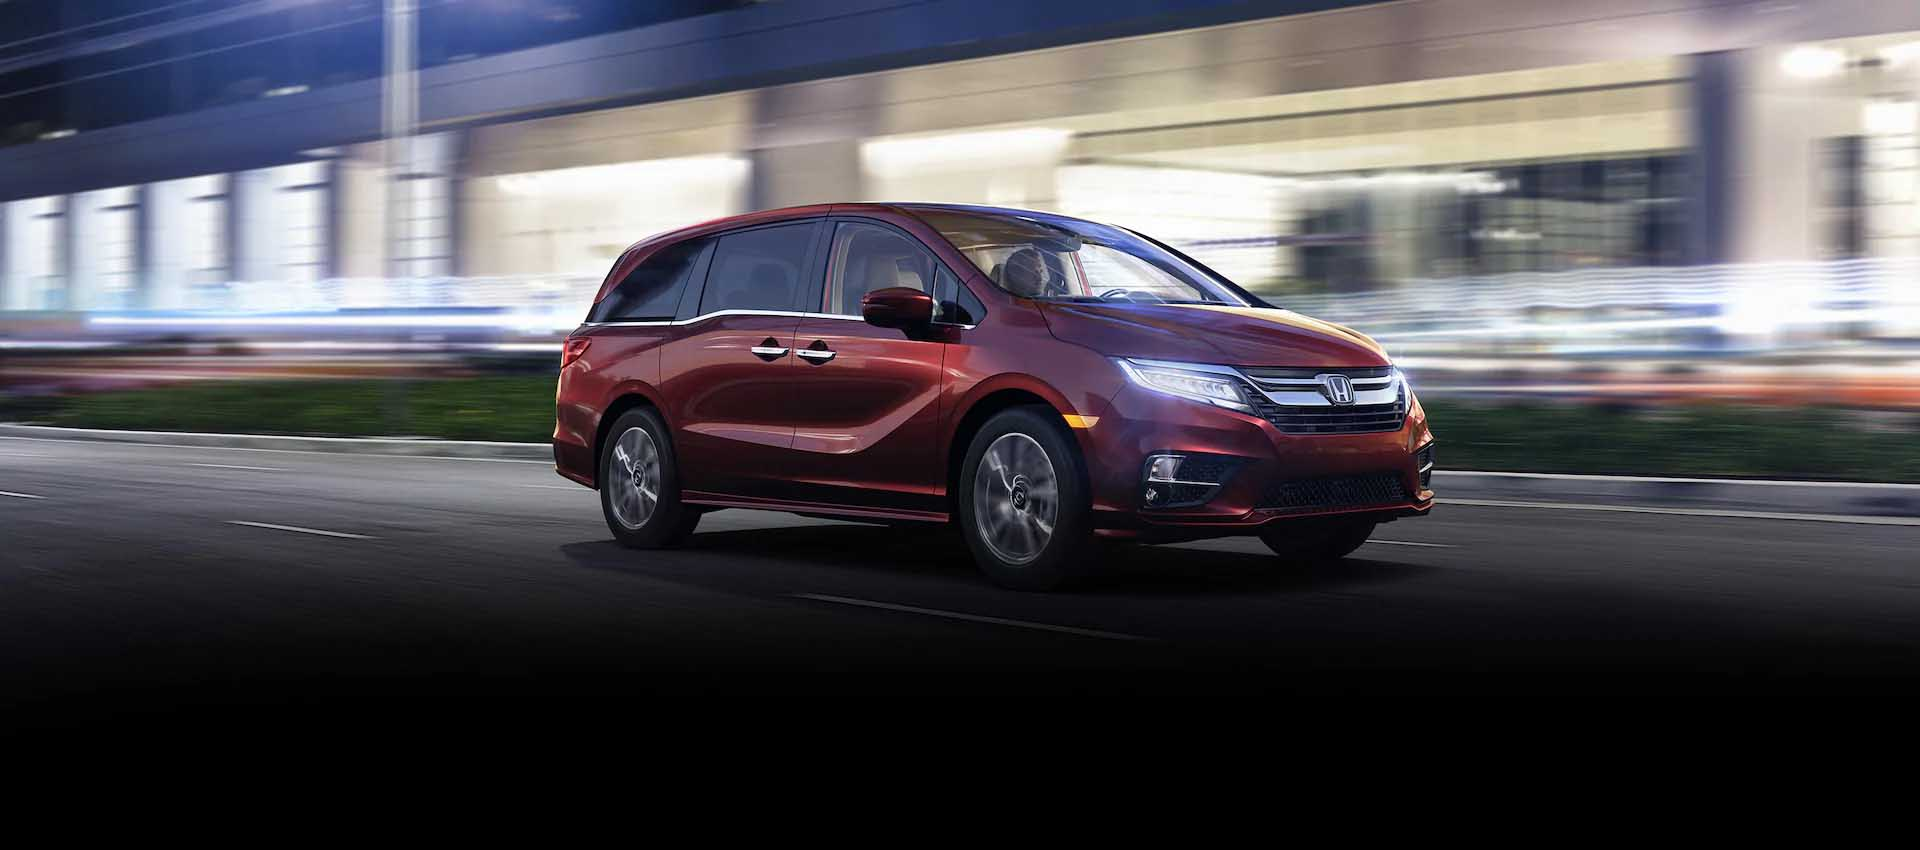 2020 Honda Odyssey Models For Sale In Saratoga Springs, New York